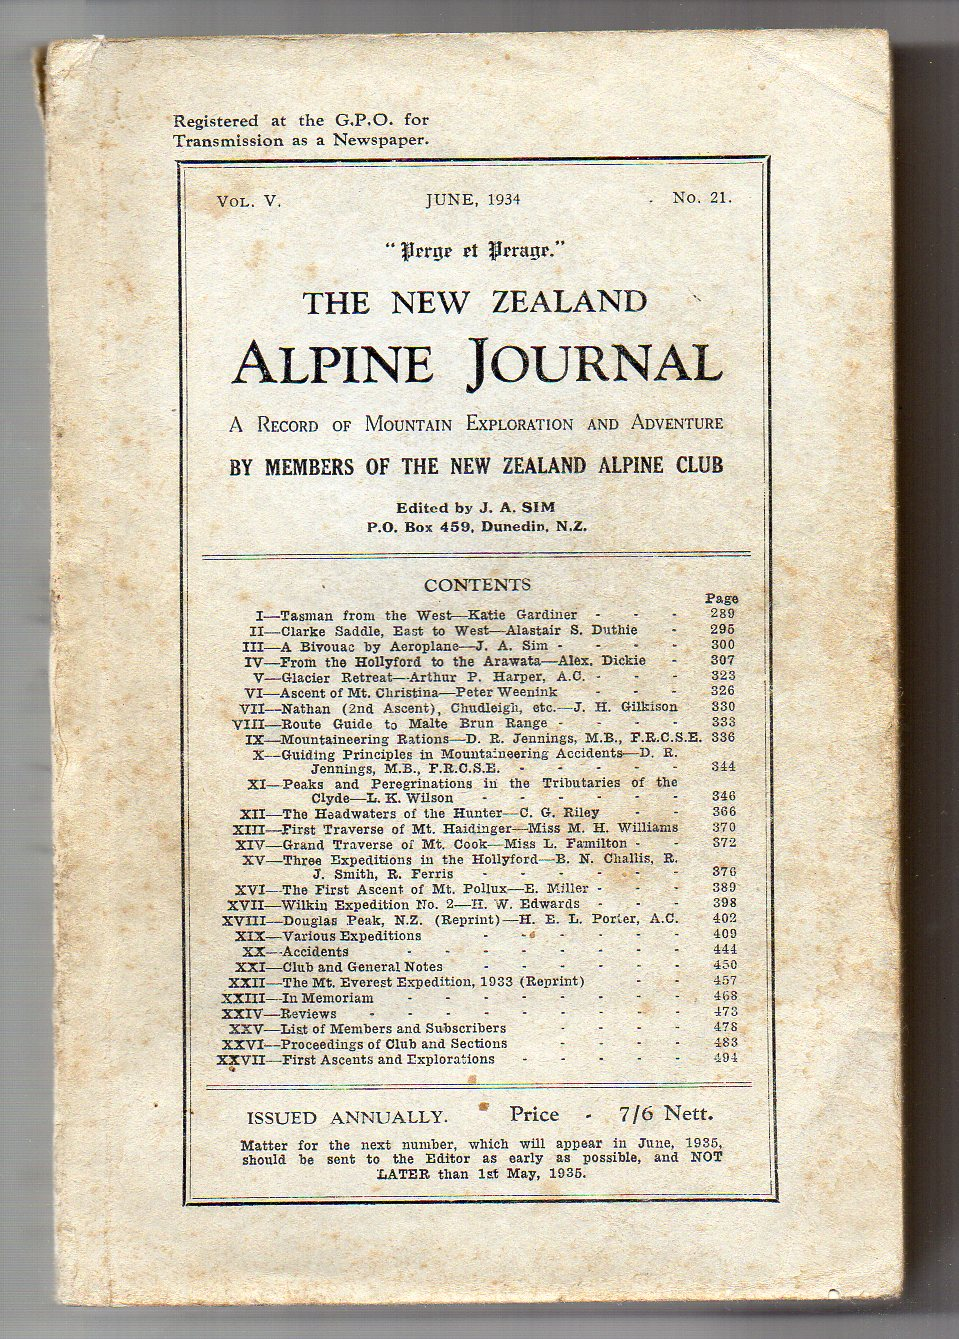 Image for The New Zealand Alpine Journal - June, 1934 - Vol. V, No. 21. A Record of Mountain Exploration and Adventure By Members of the New Zealand Alpine Club